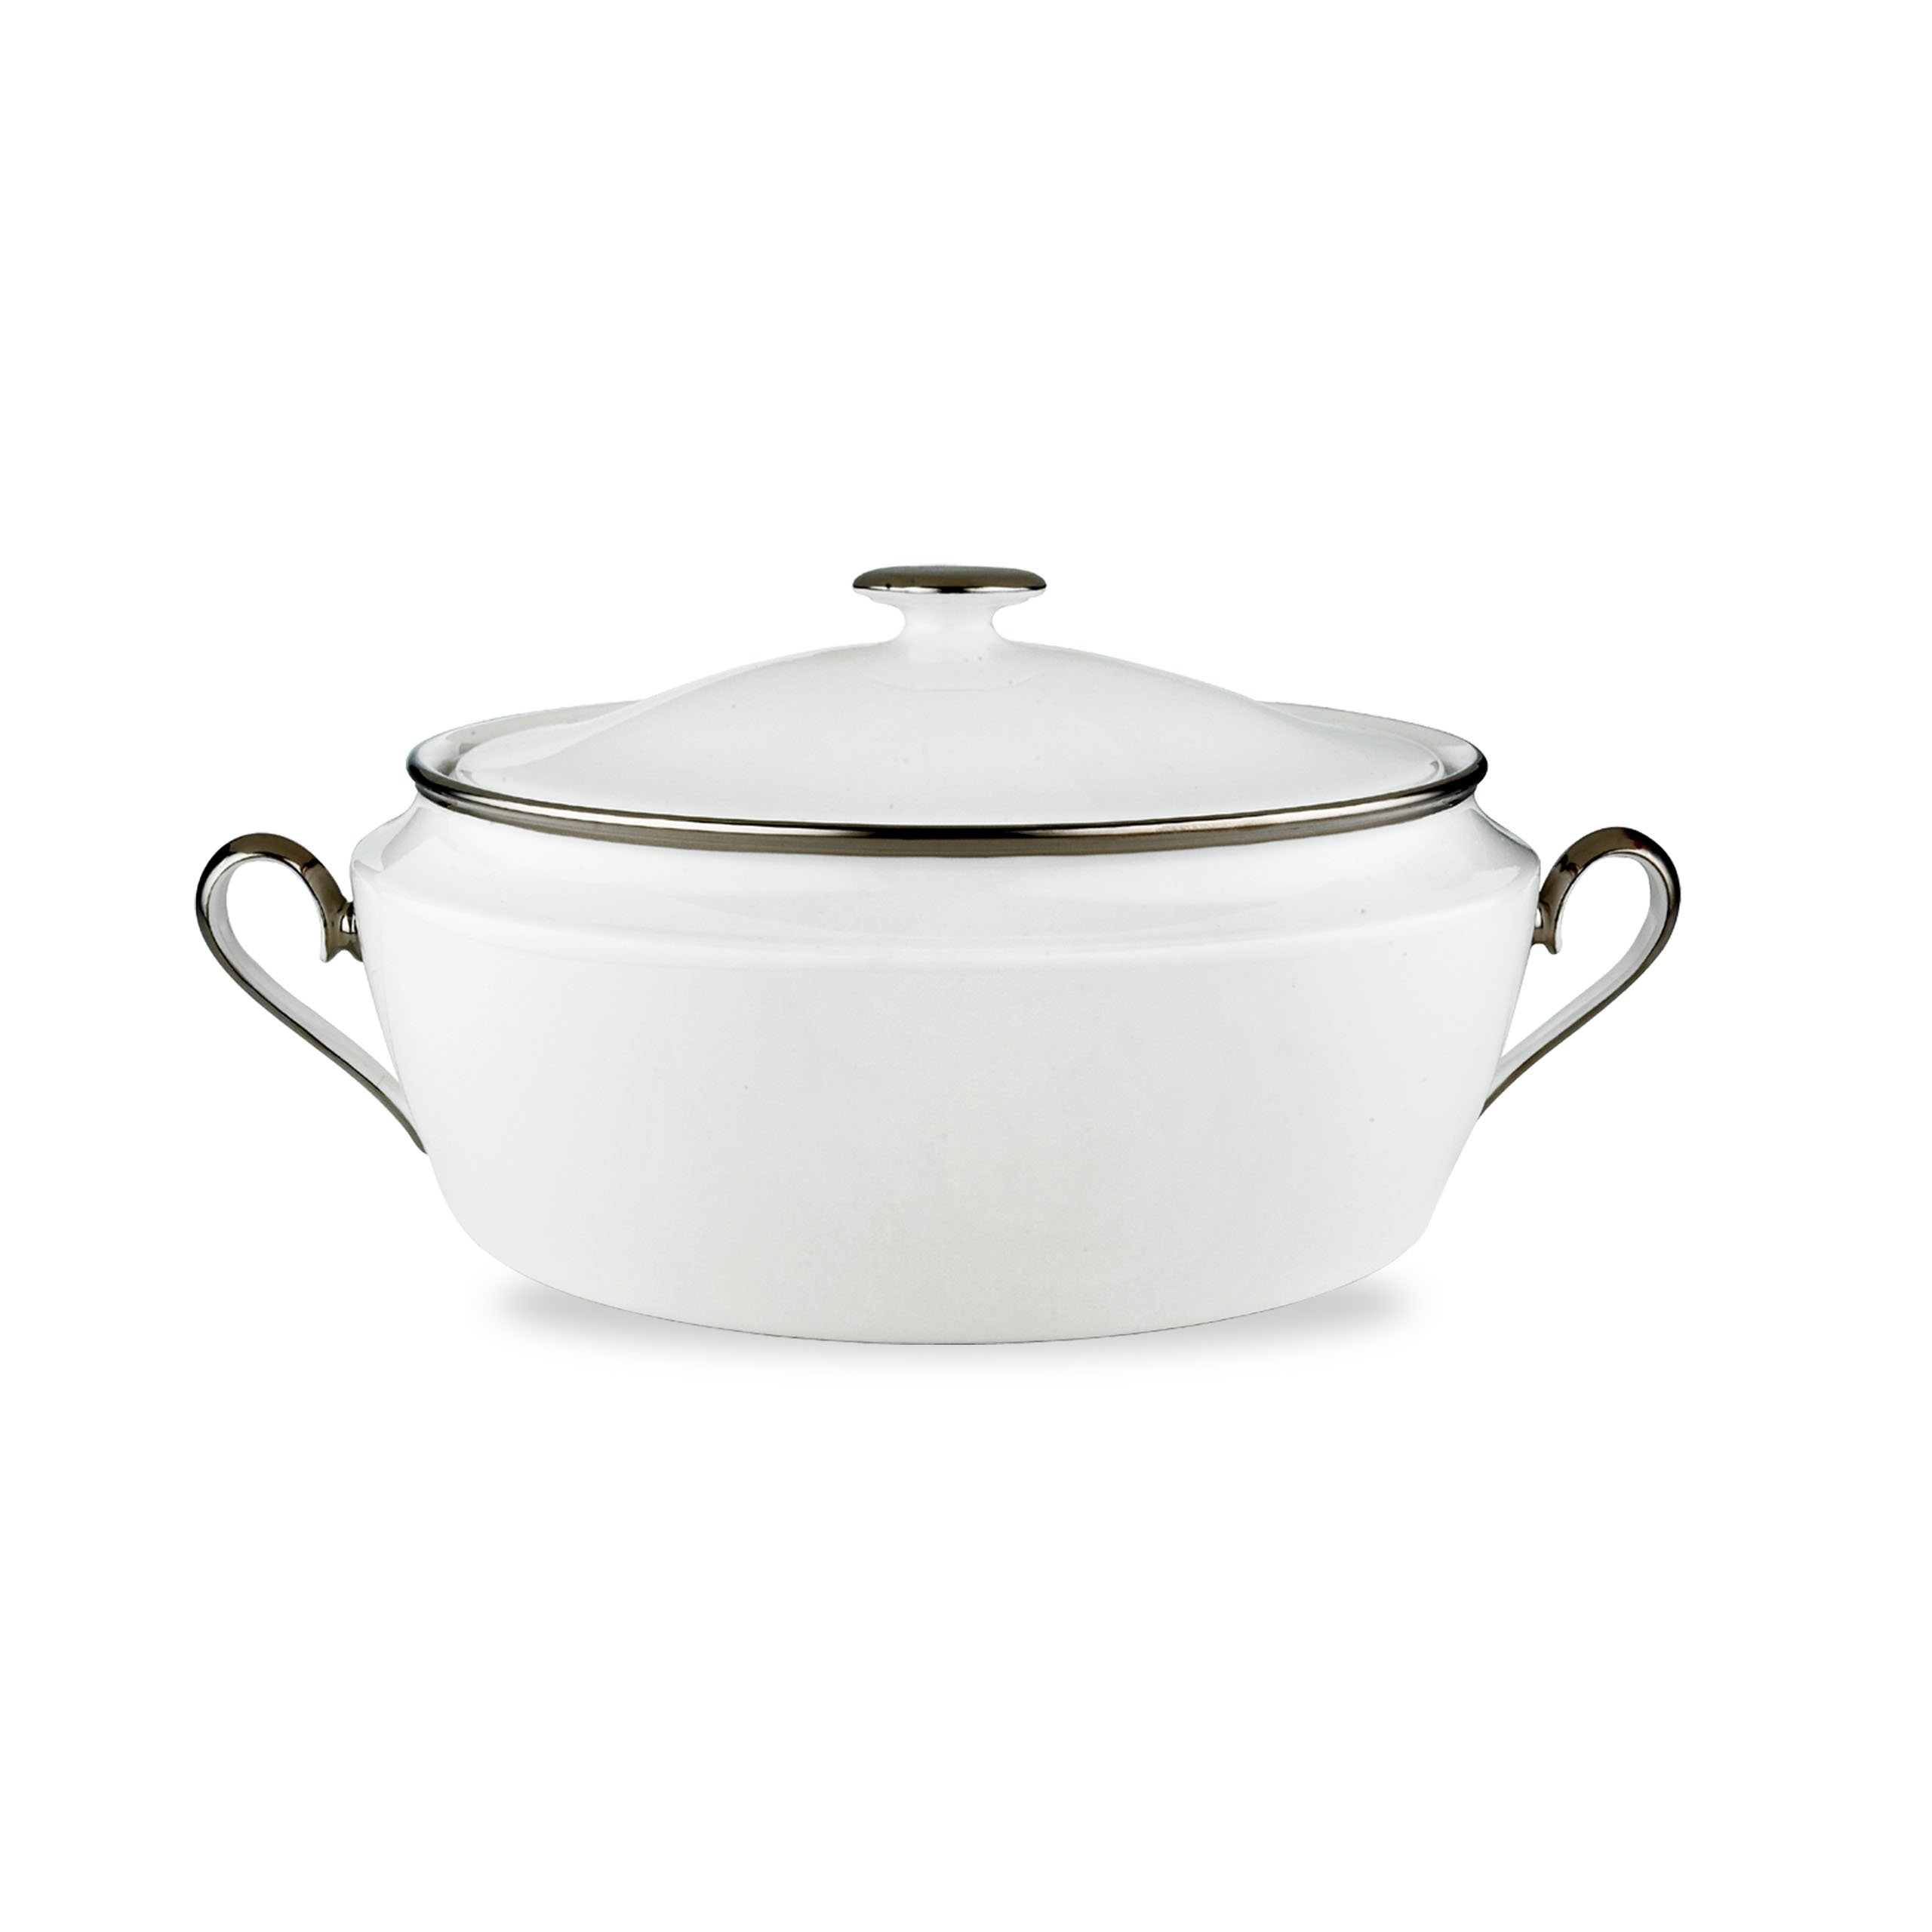 Lenox Solitaire Covered Vegetable Bowl, White